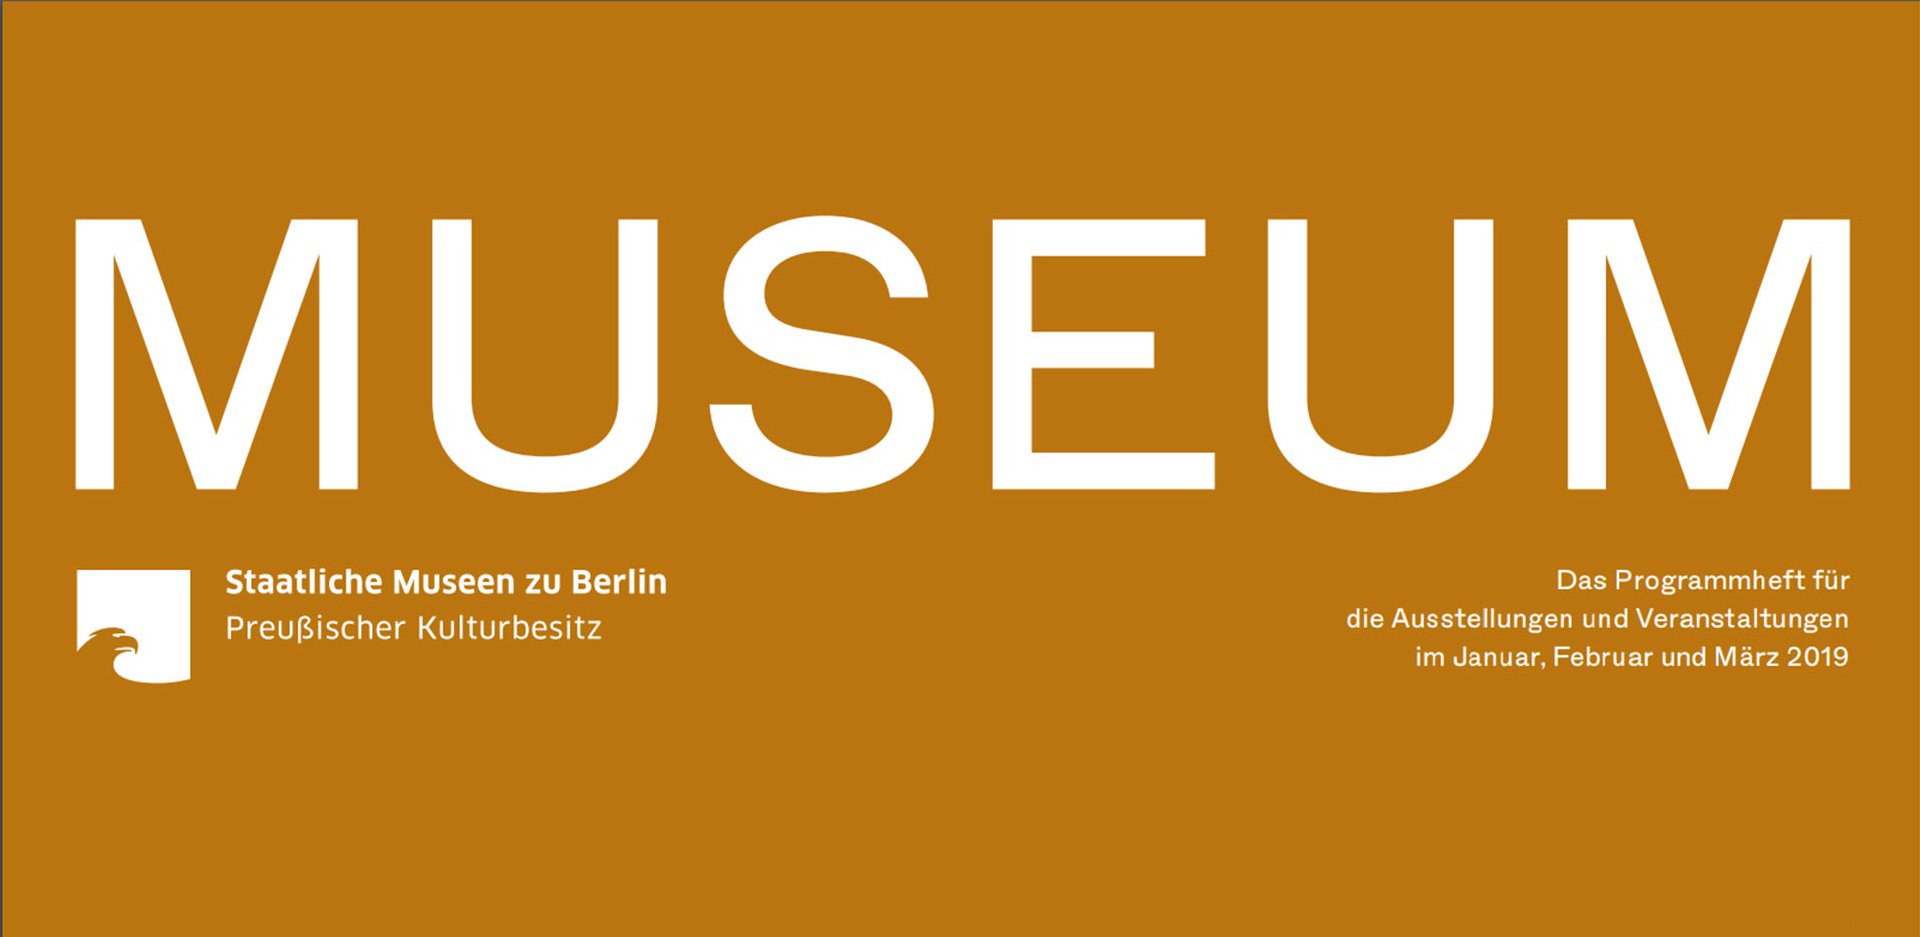 MUSEUM I 2019 – The program of the Staatliche Museen zu Berlin is out now!